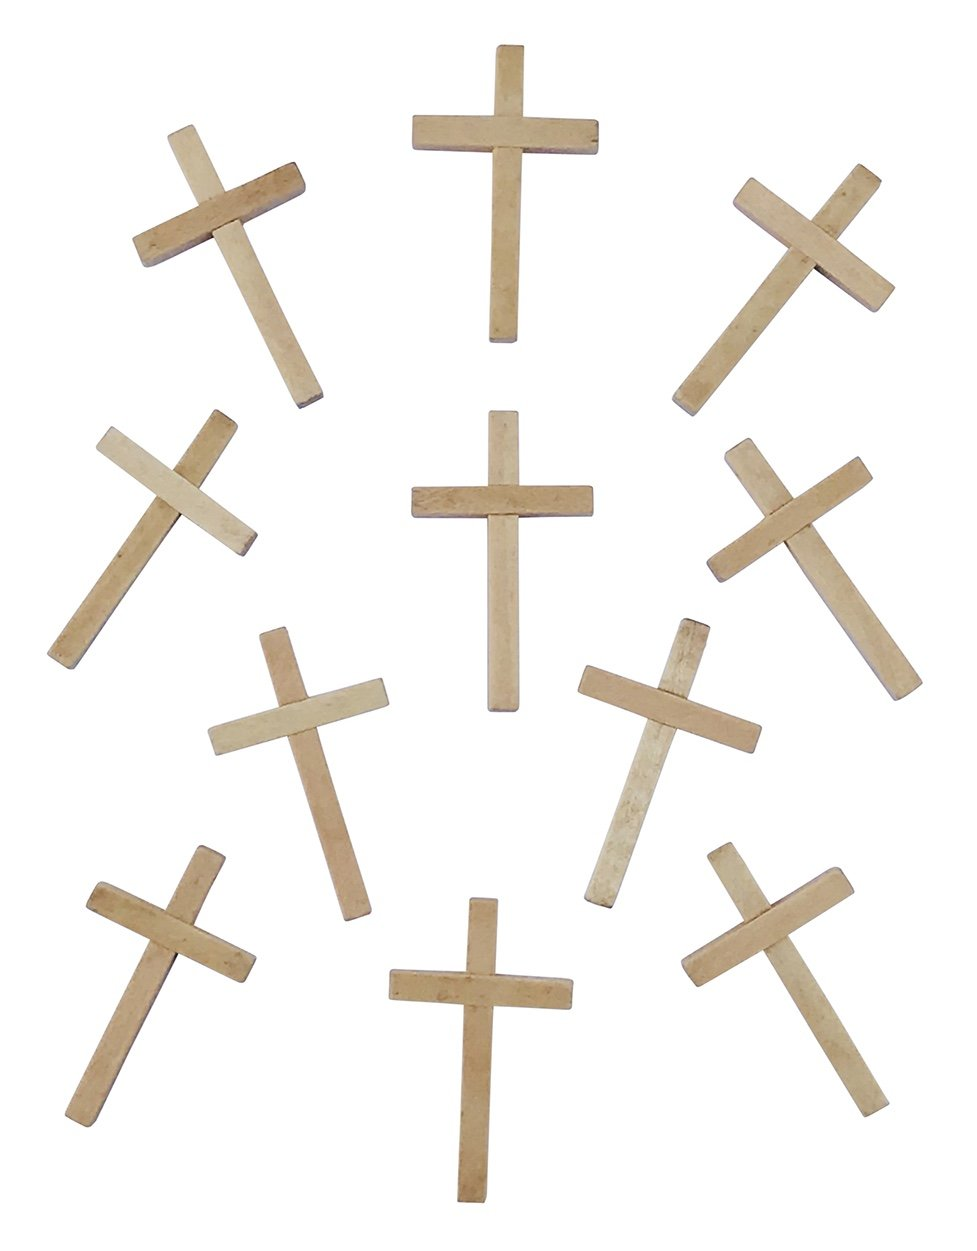 Unbranded Small Wooden Crucifix Crosses One Pack of 40 Pieces 2'' Tall Natural Color